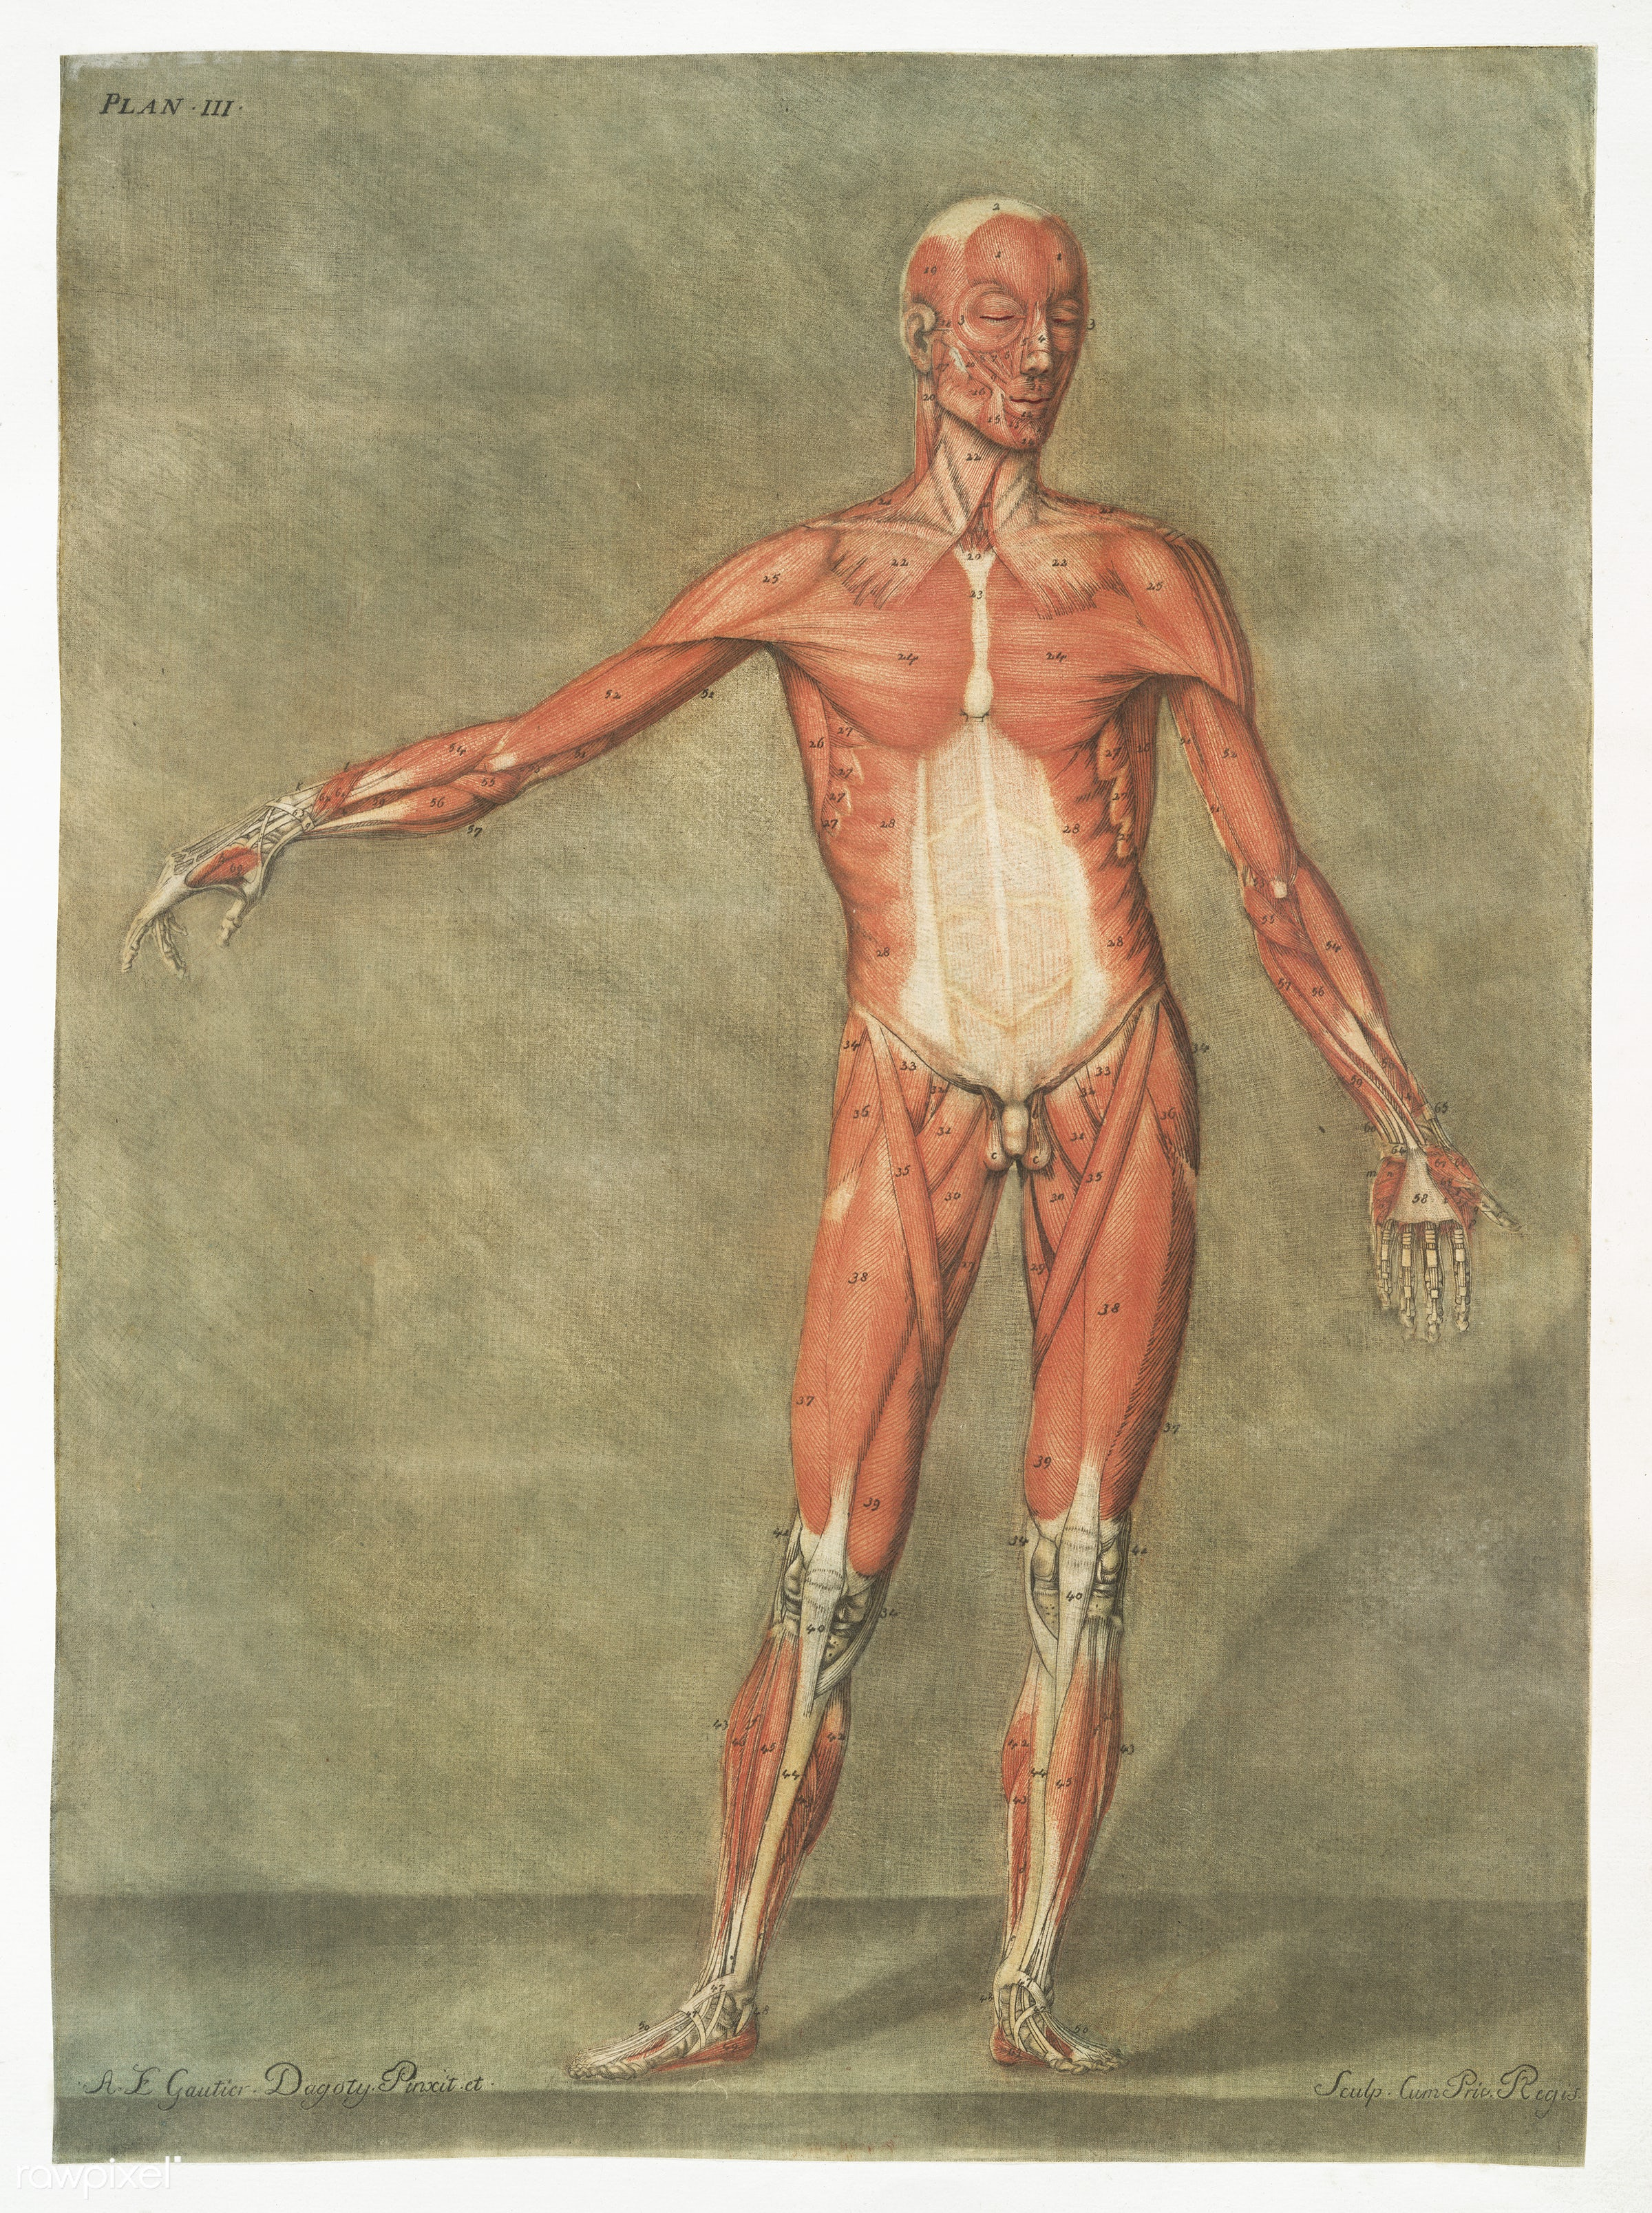 This fascinating collection of anatomical illustrations is created by Arnauld-Eloi Gautier-Dagoty (1741-1771) for the Royal...